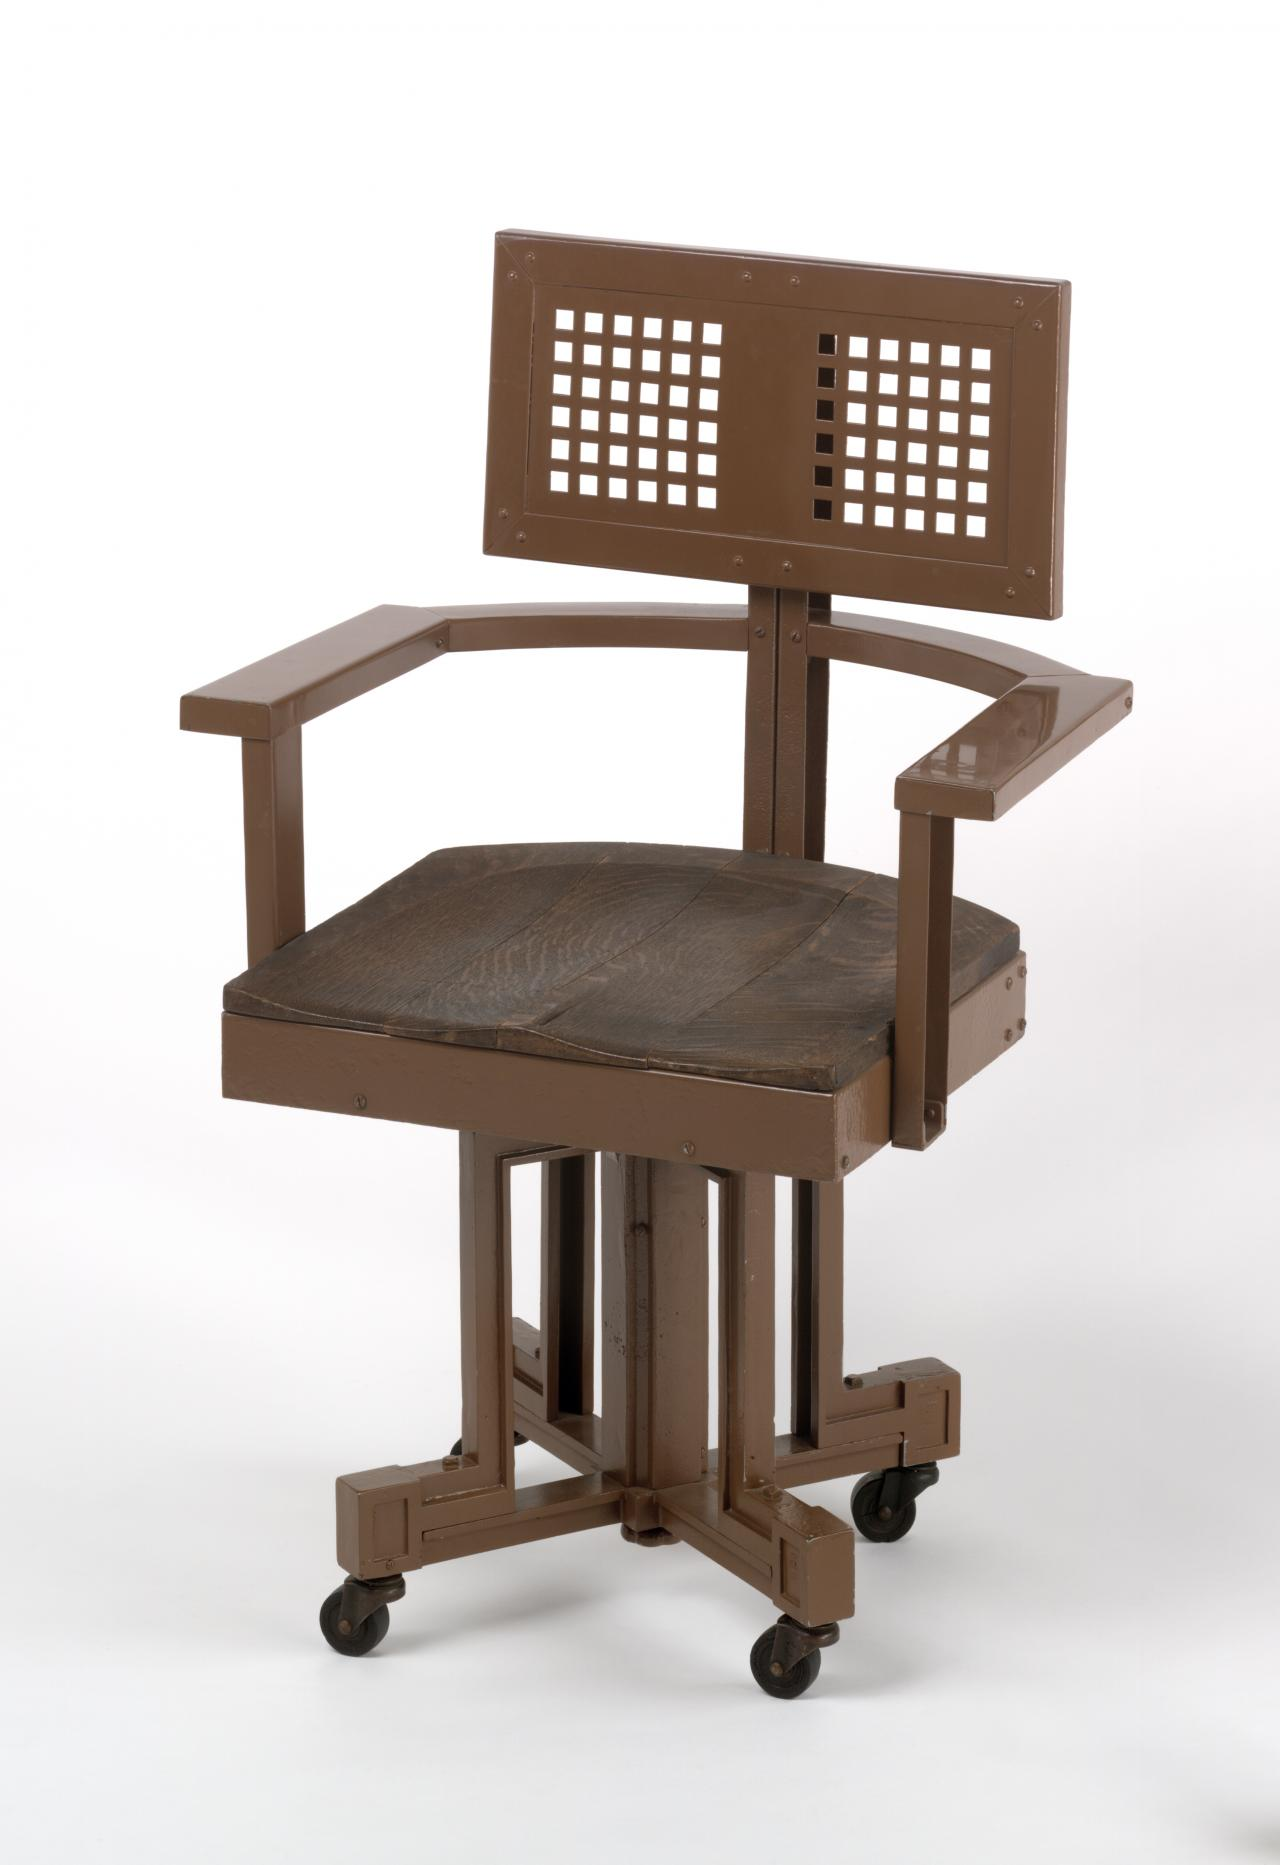 Office chair, from the Larkin Company Administration Building, Buffalo, New York